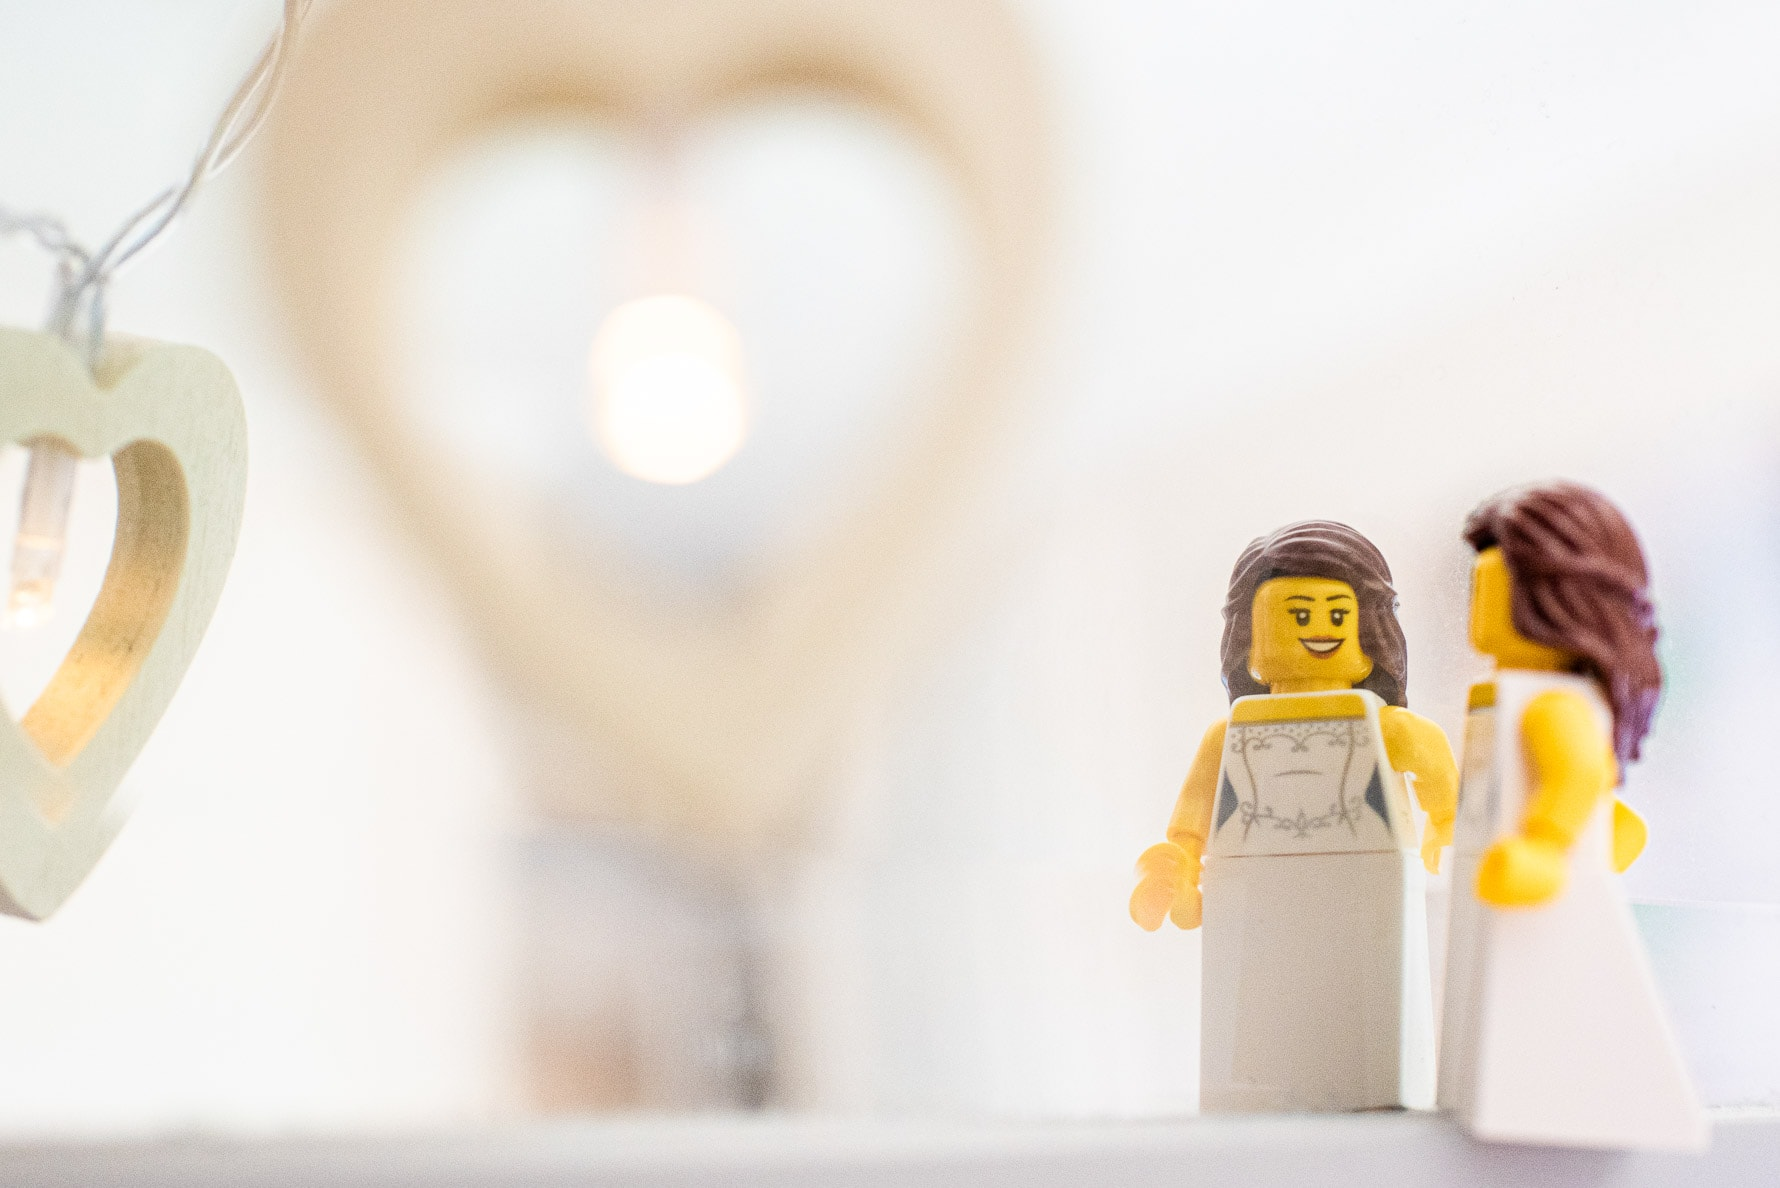 Lego bride checks herself in the mirrorr.